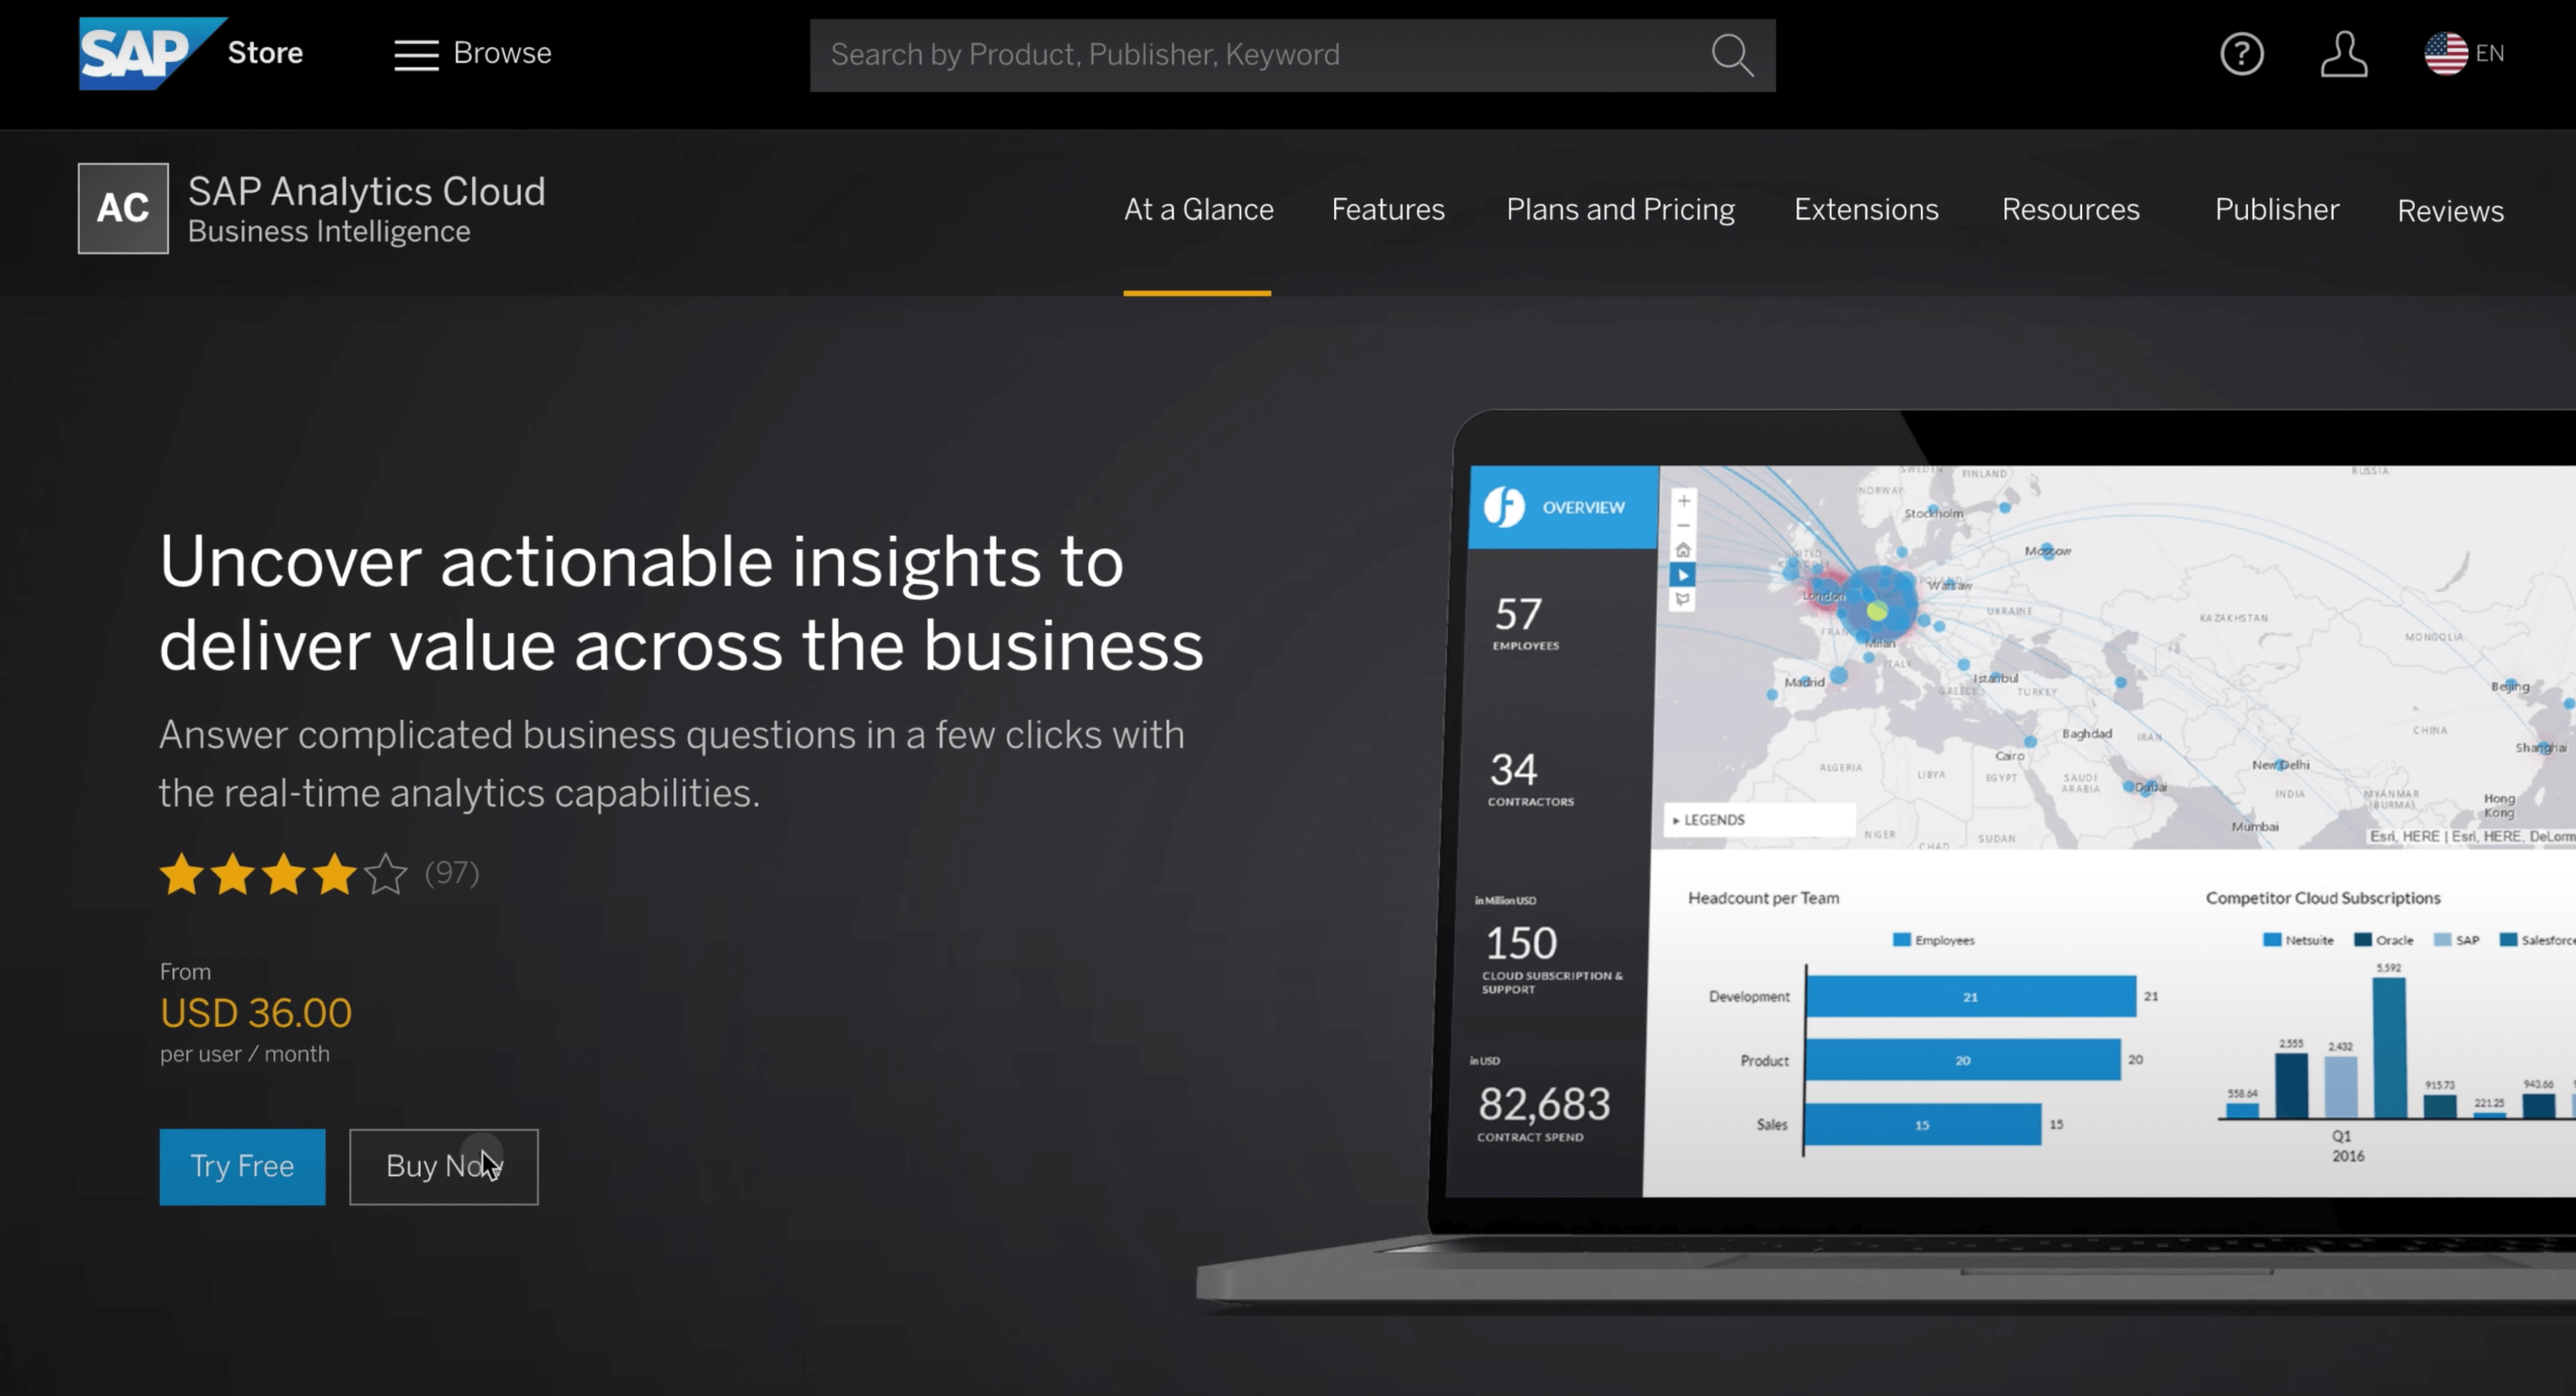 Introducing the new SAP Store